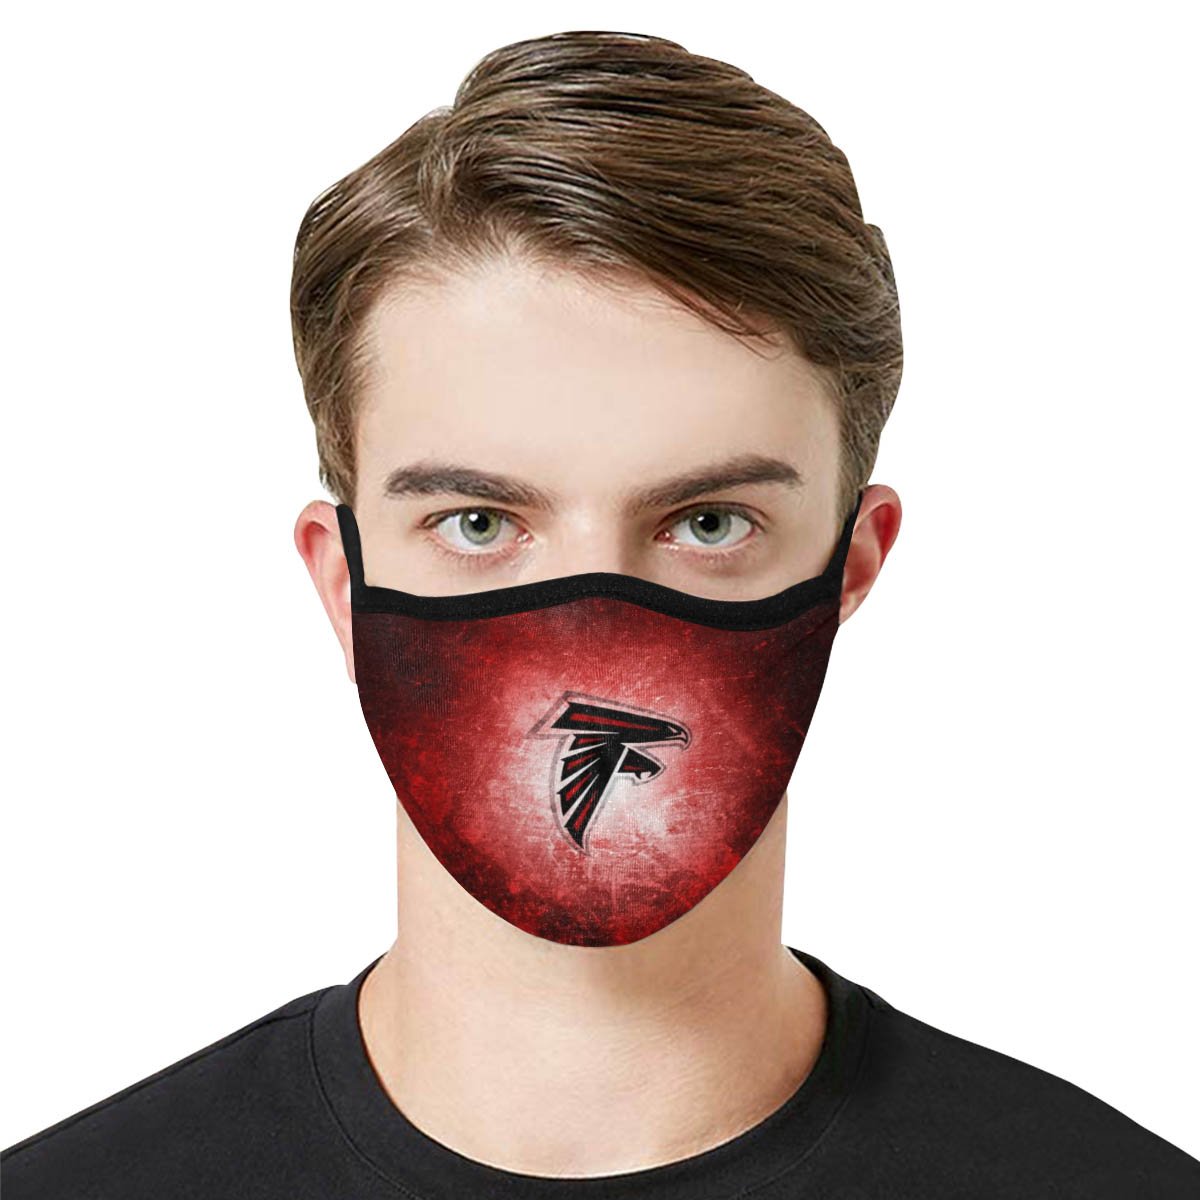 National football league atlanta falcons face mask 3